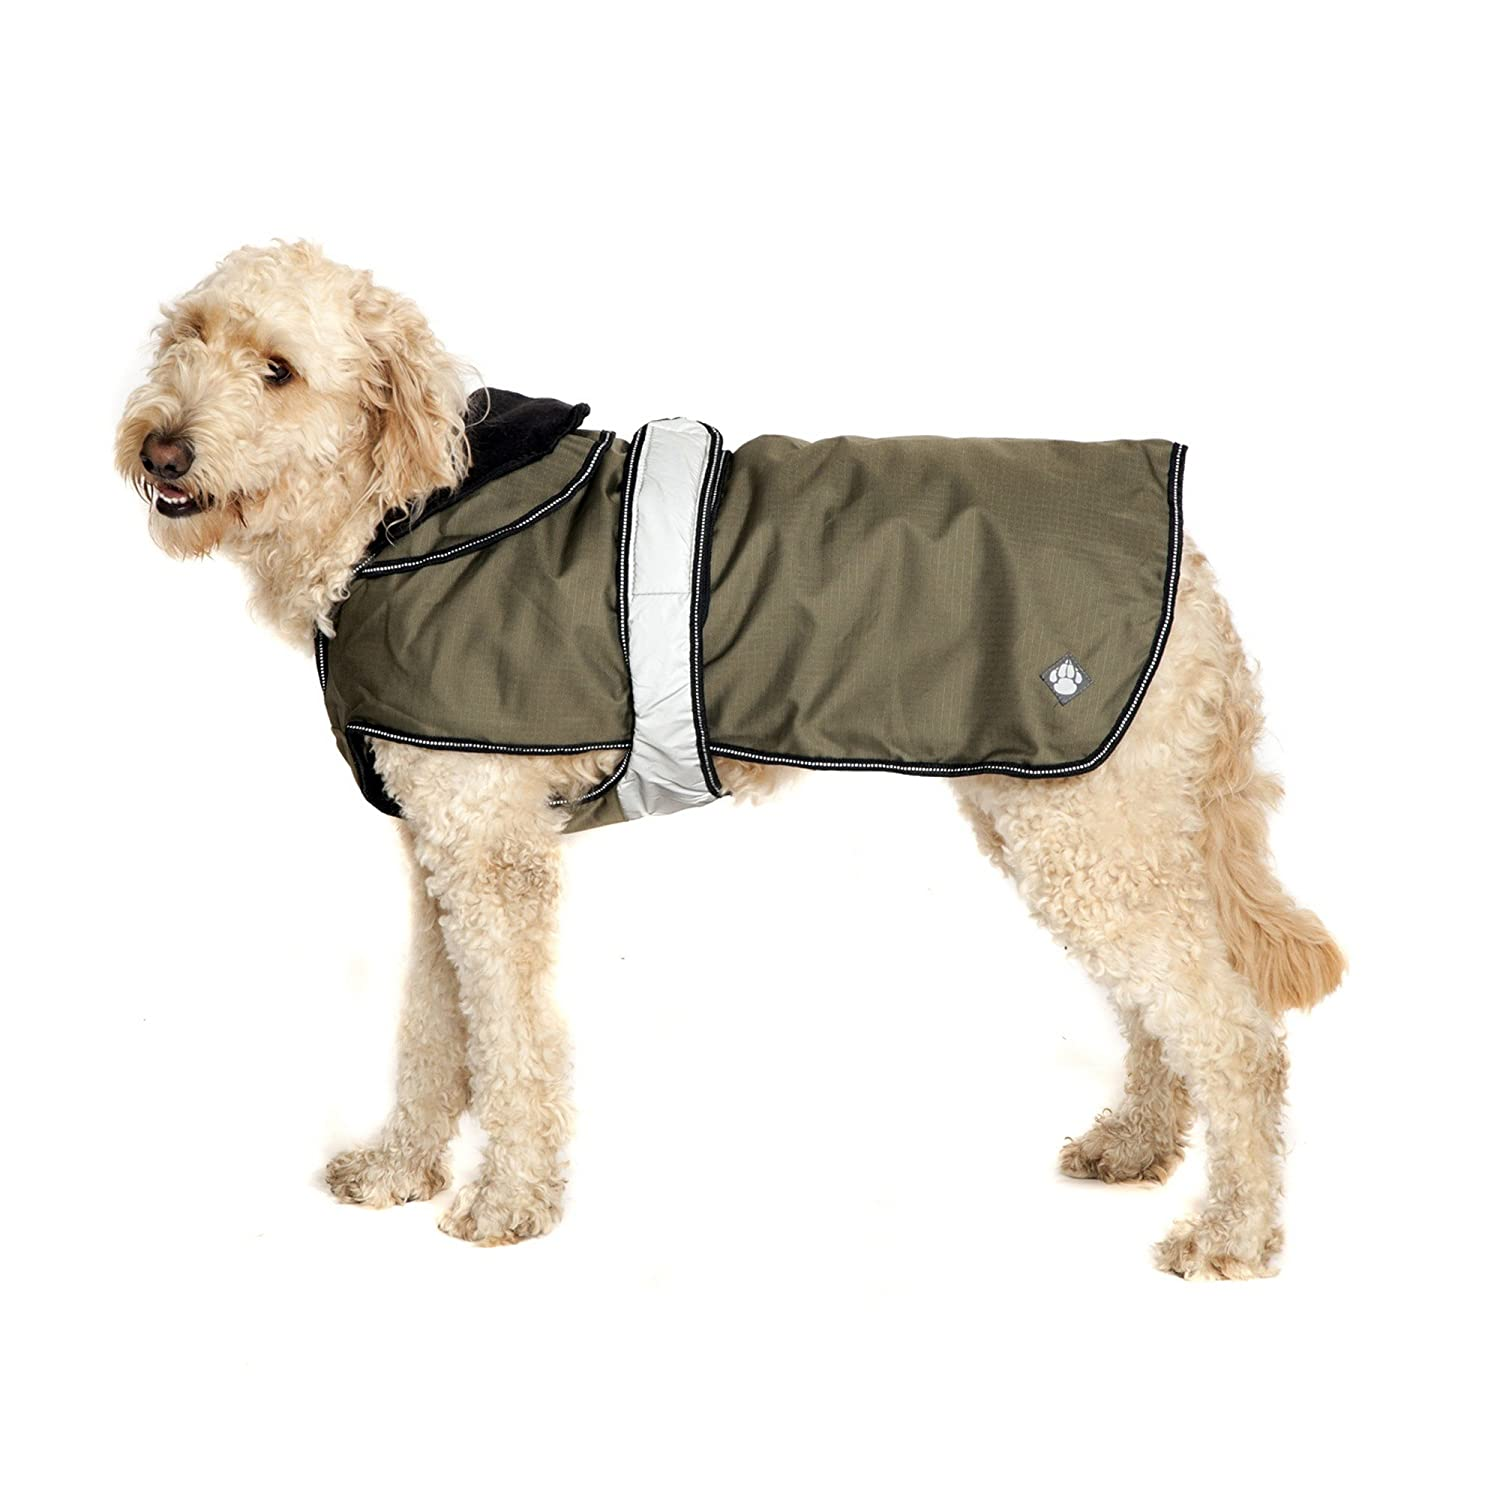 Khaki 29.5in Khaki 29.5in Danish Design Pet Products 2 In 1 Dog Coat (29.5in) (Khaki)